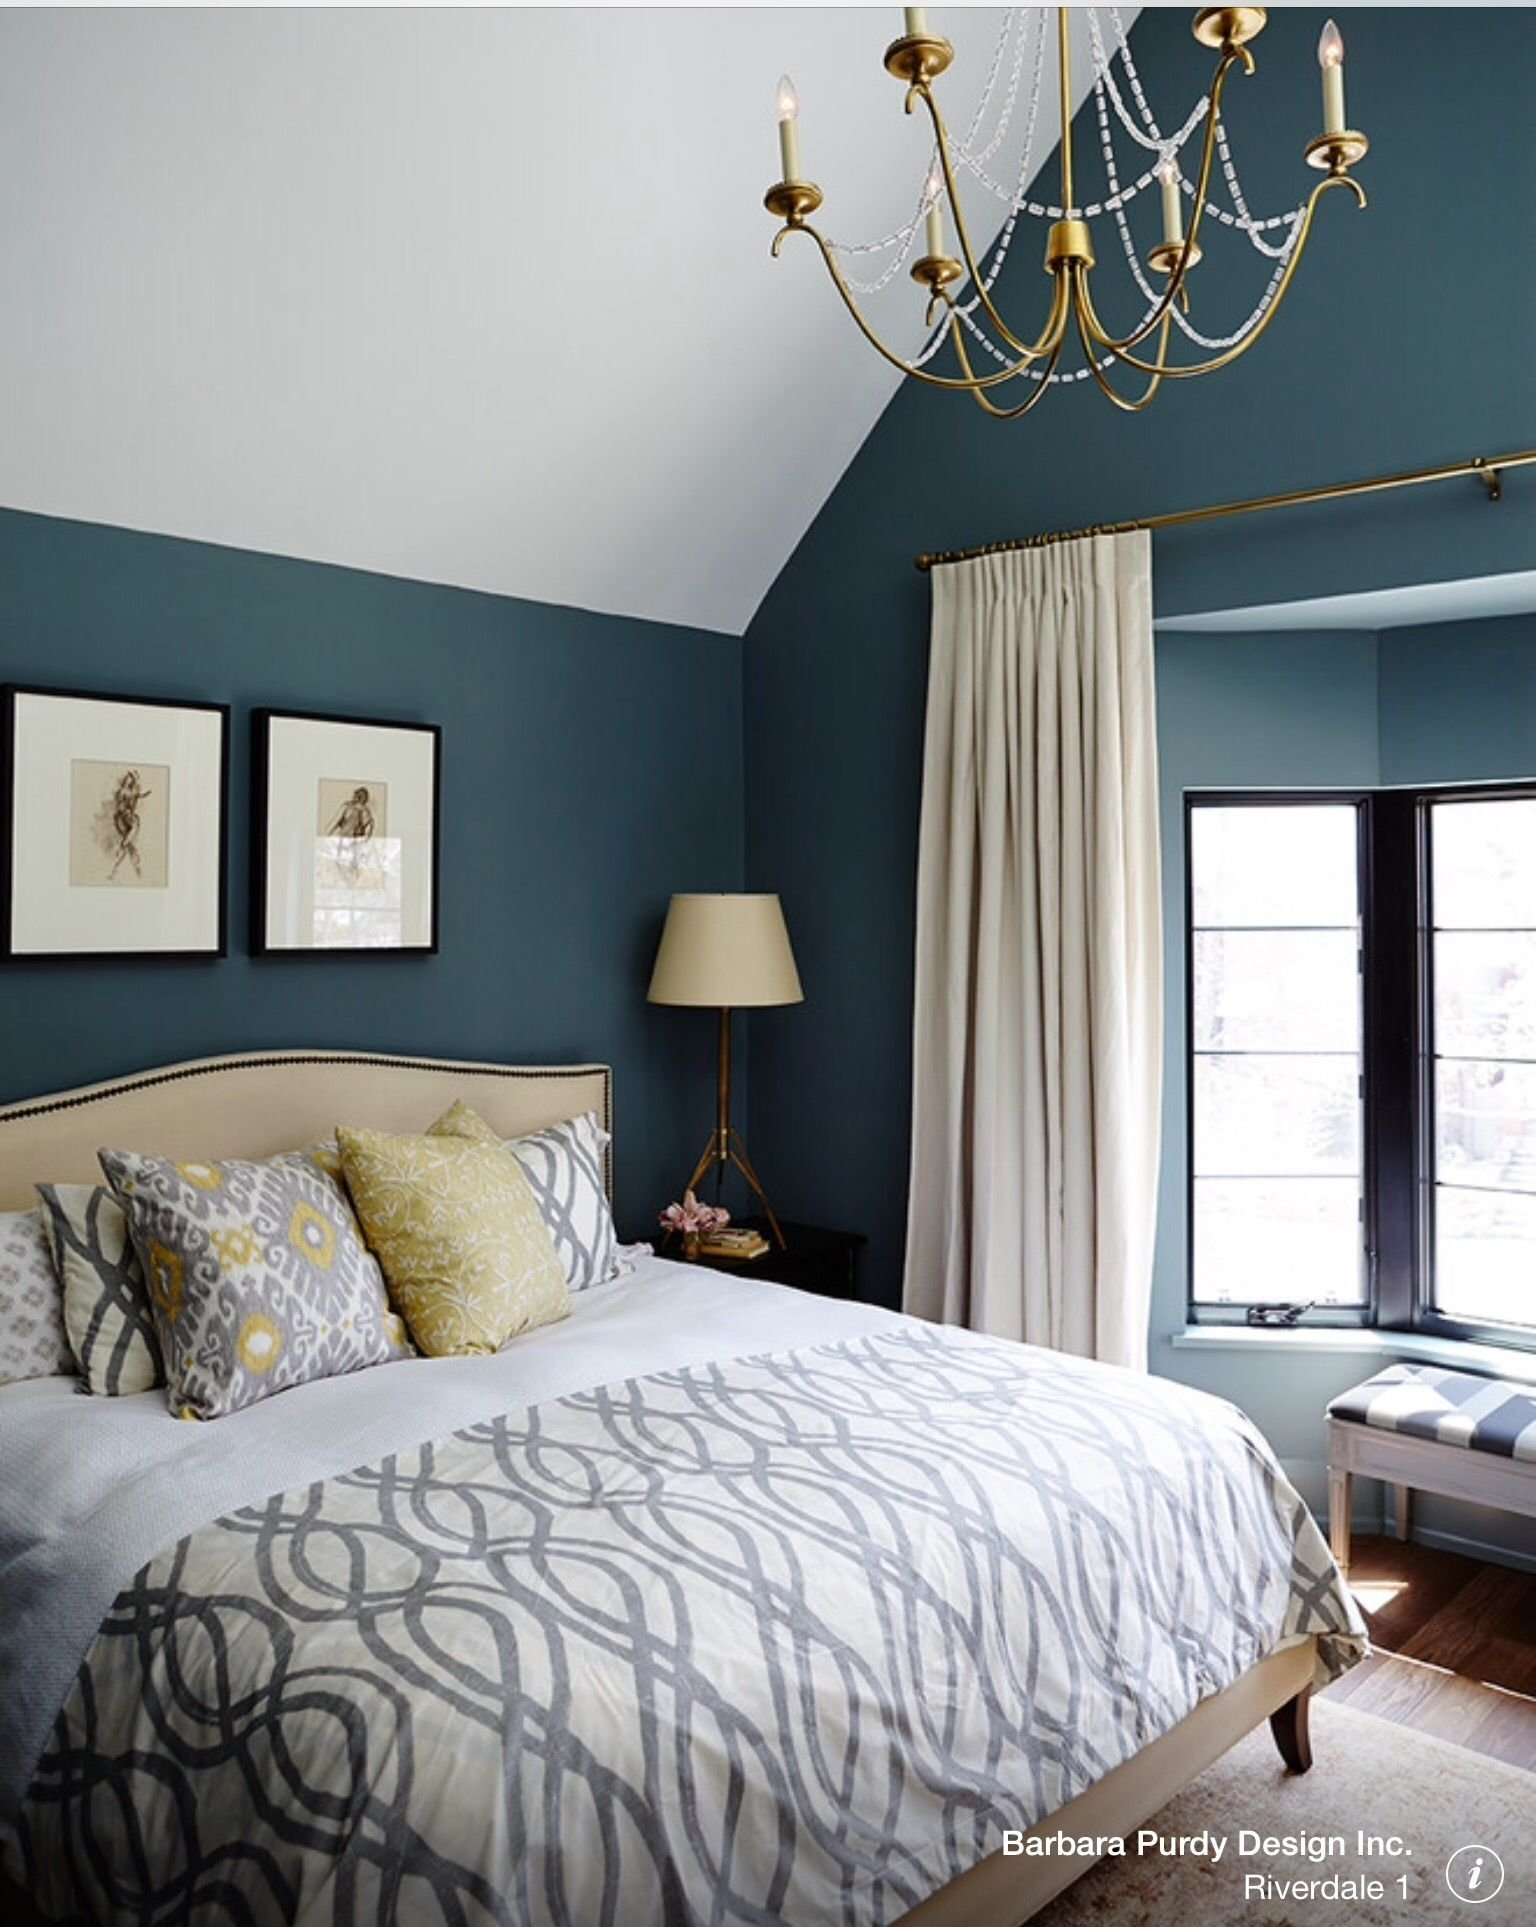 Best Bedroom Benjamin Moore Templeton Gray Hc 161 Home Decor With Pictures